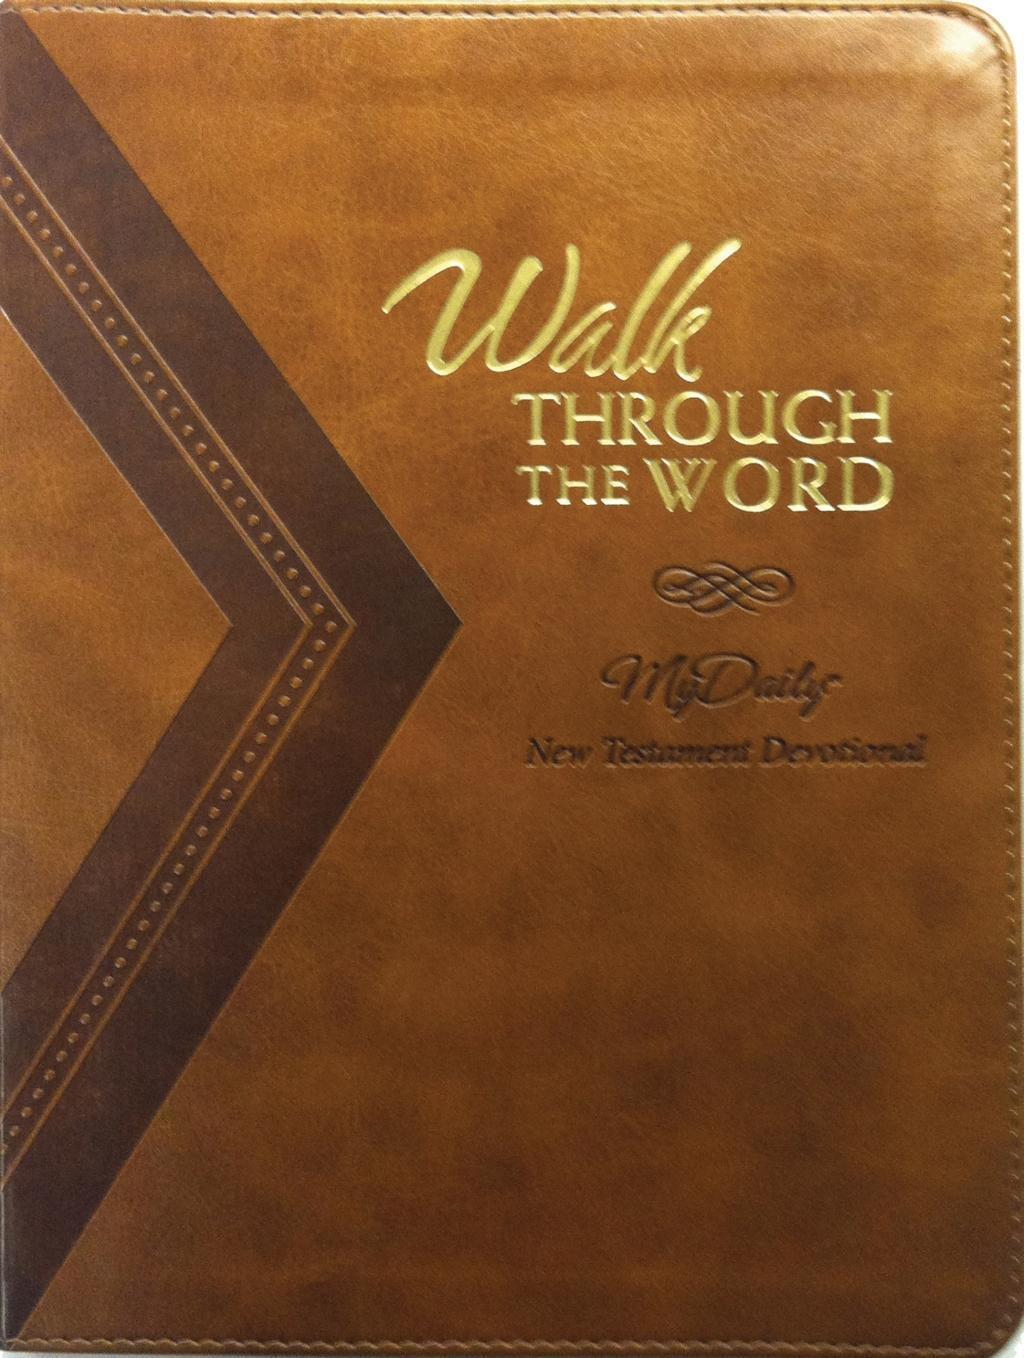 Walk Through the Word